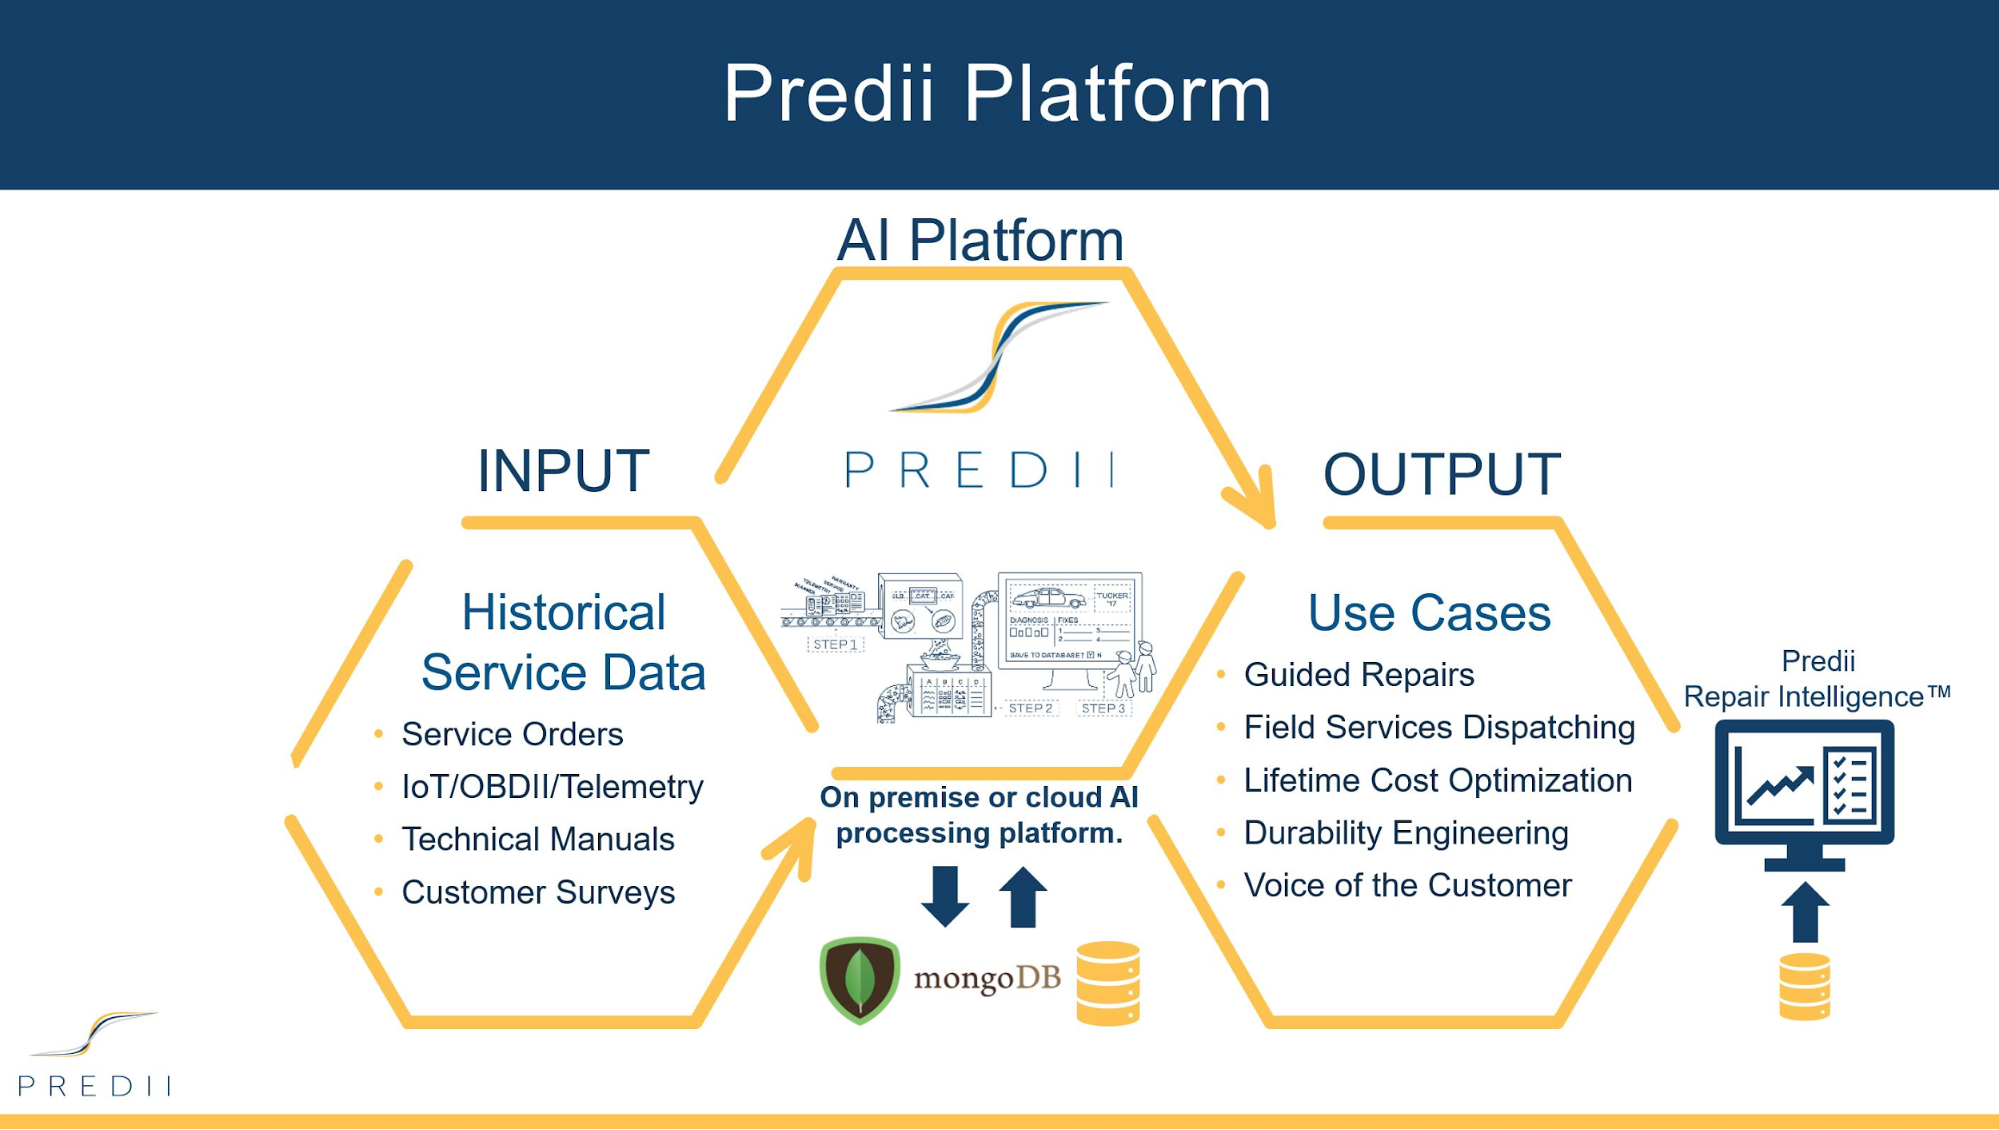 The Predii Platform